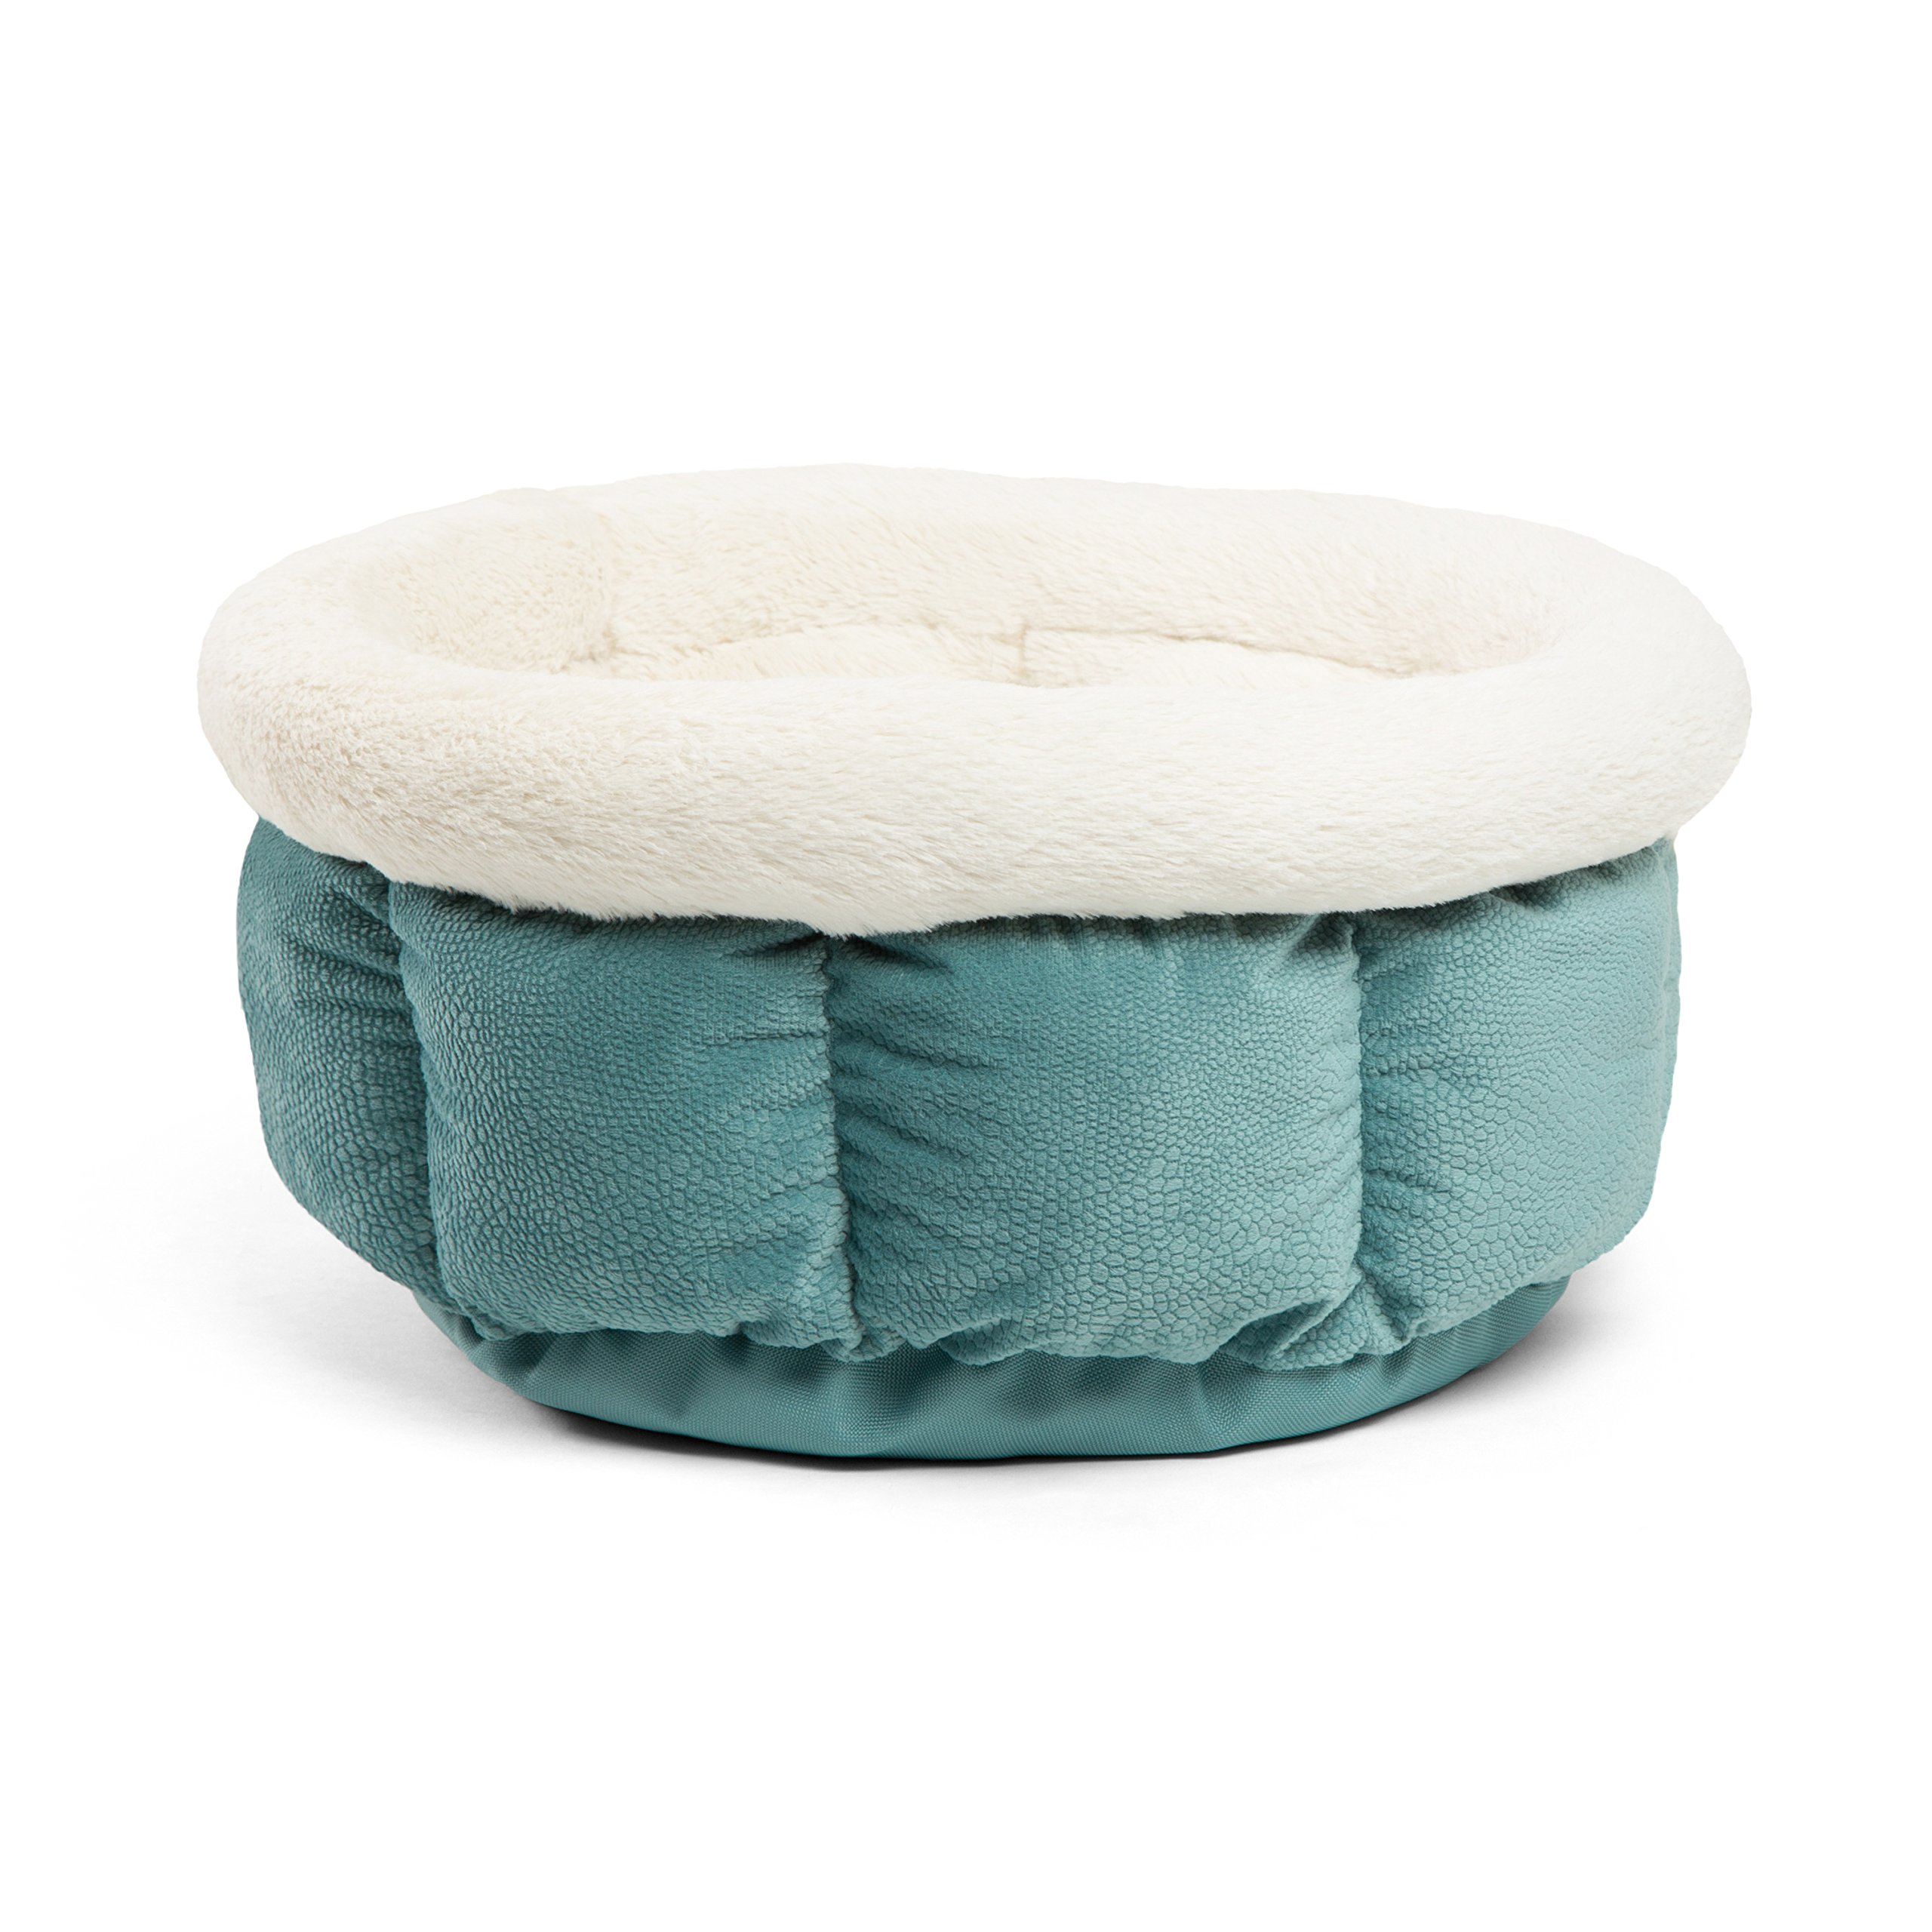 Best Friends by Sheri Small Cuddle Cup - Cozy, Comfortable Cat and Dog House Bed - High-Walls for Improved Sleep, TidePool by Best Friends by Sheri (Image #4)